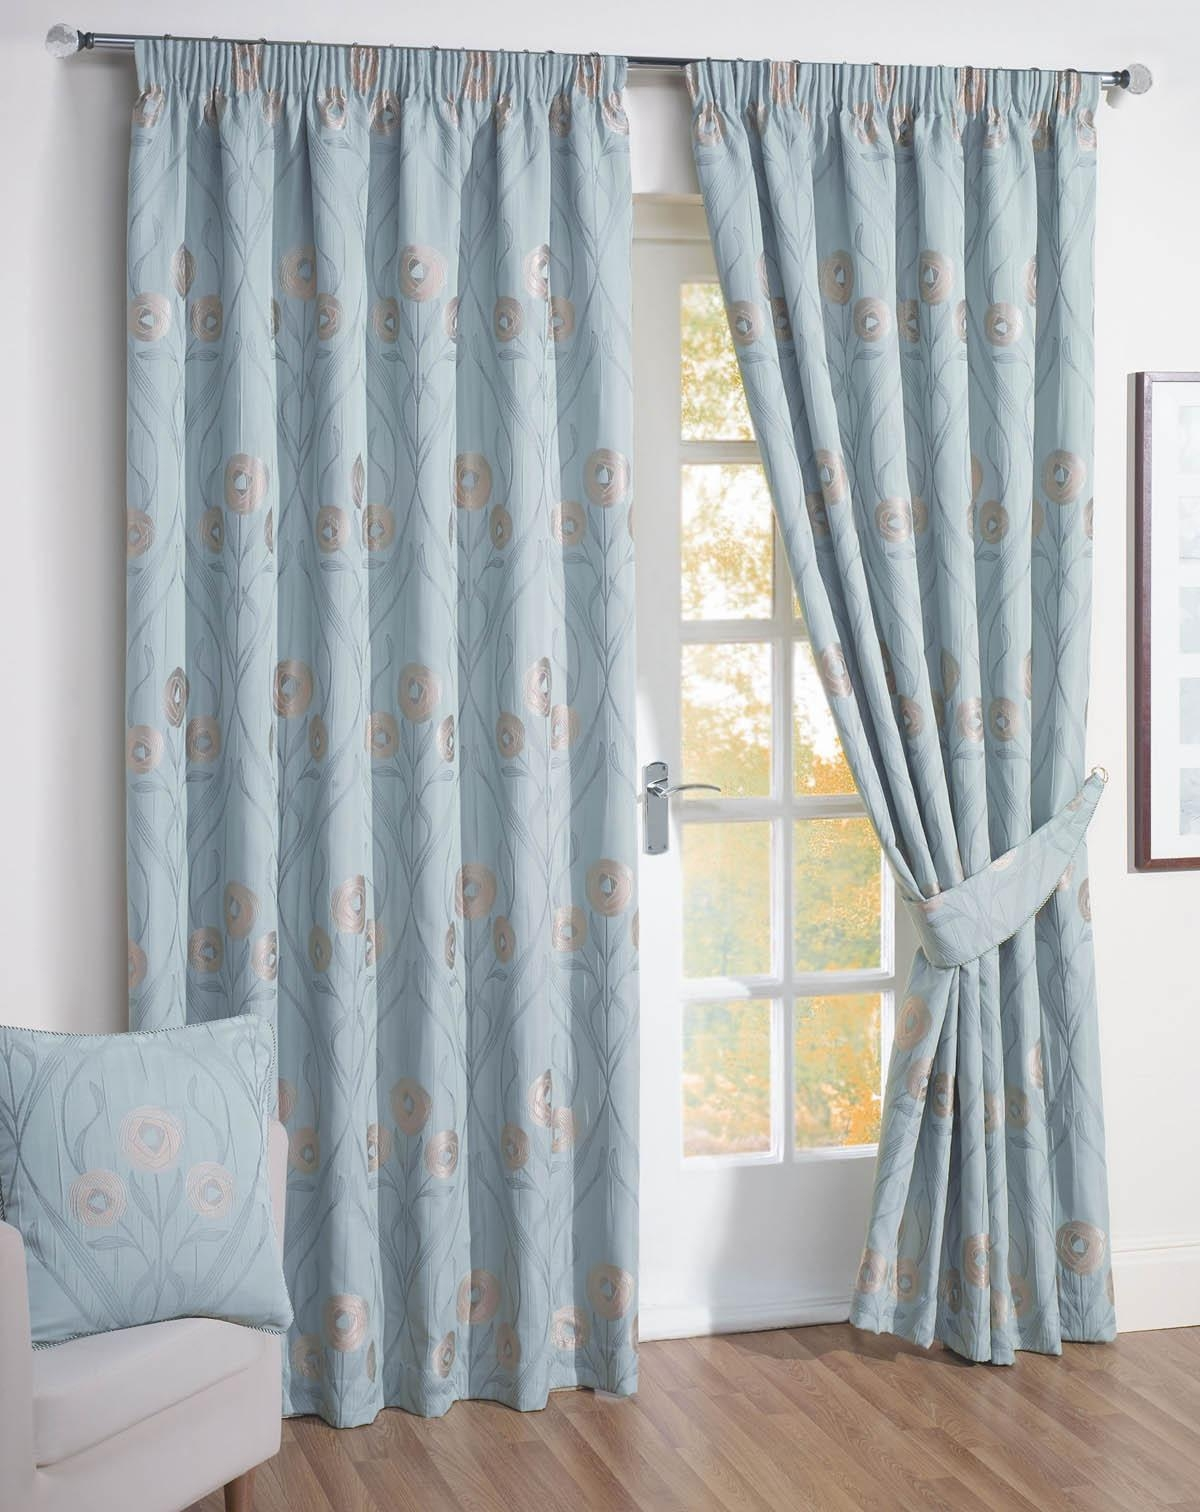 Thick Curtains Affordable Curtains Available Terrys Fabrics Throughout Ready Made Curtains For Large Bay Windows (Image 14 of 15)